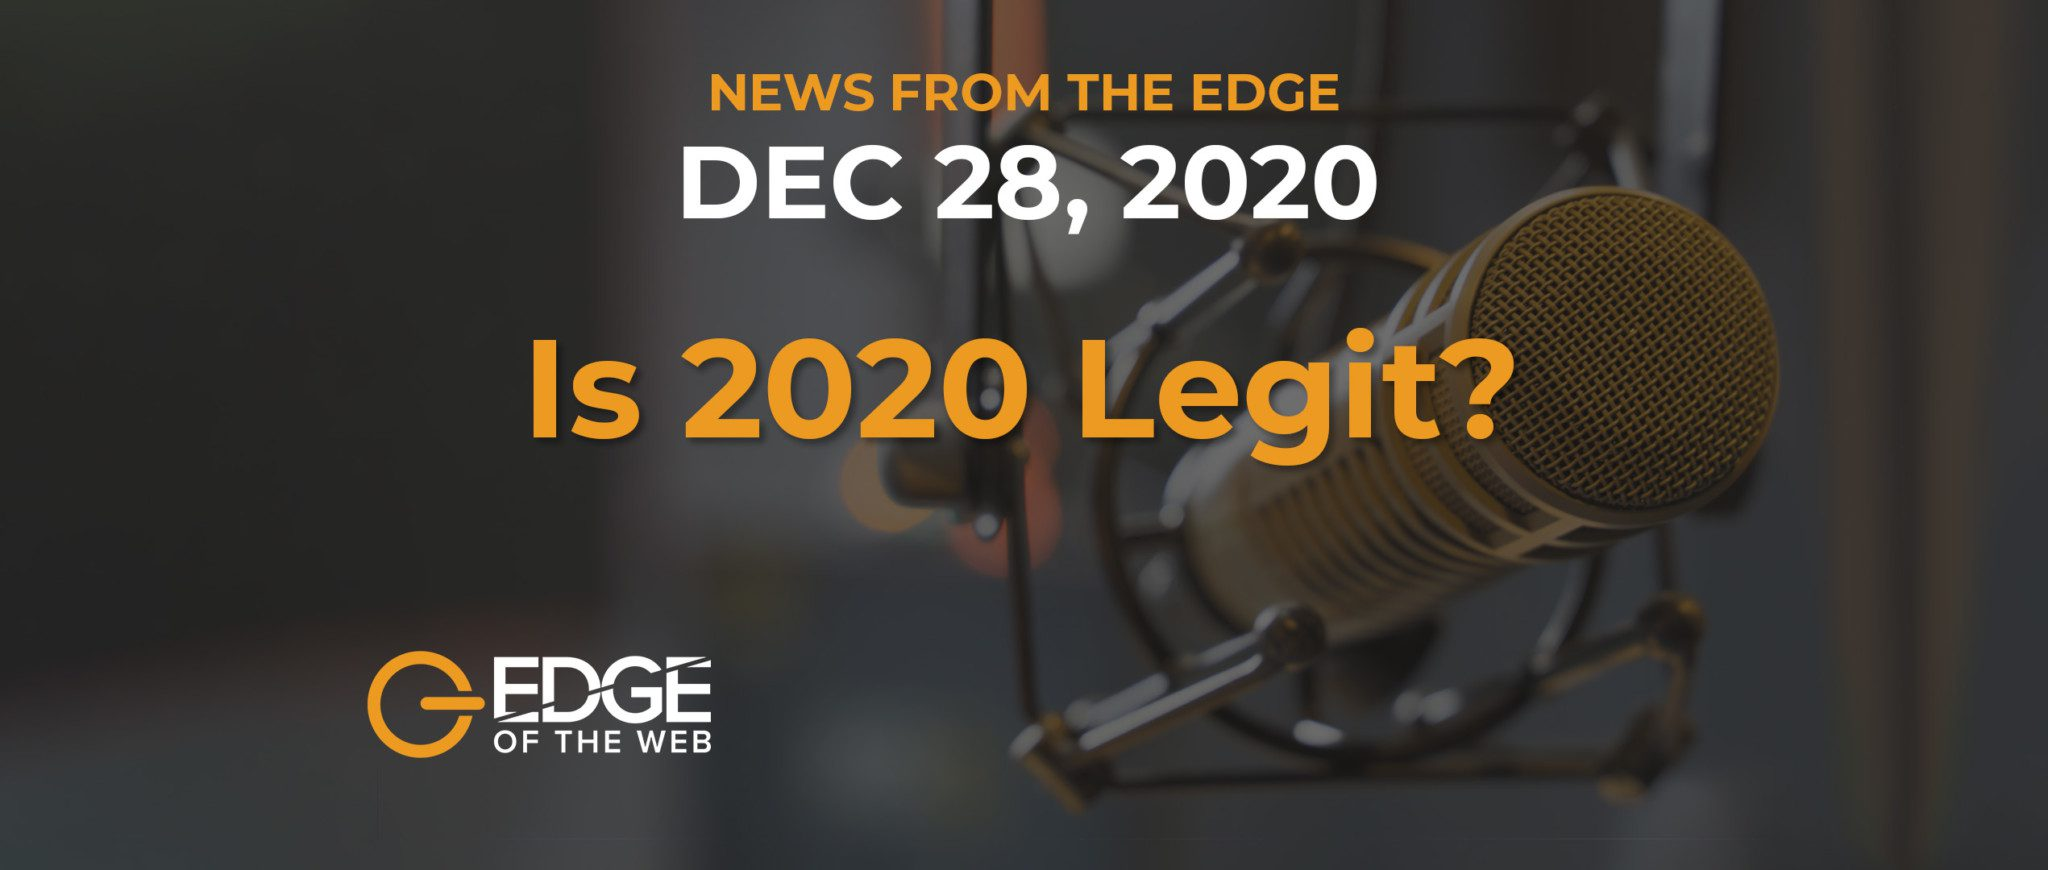 382 | News from the EDGE :  Week of December 28, 2020